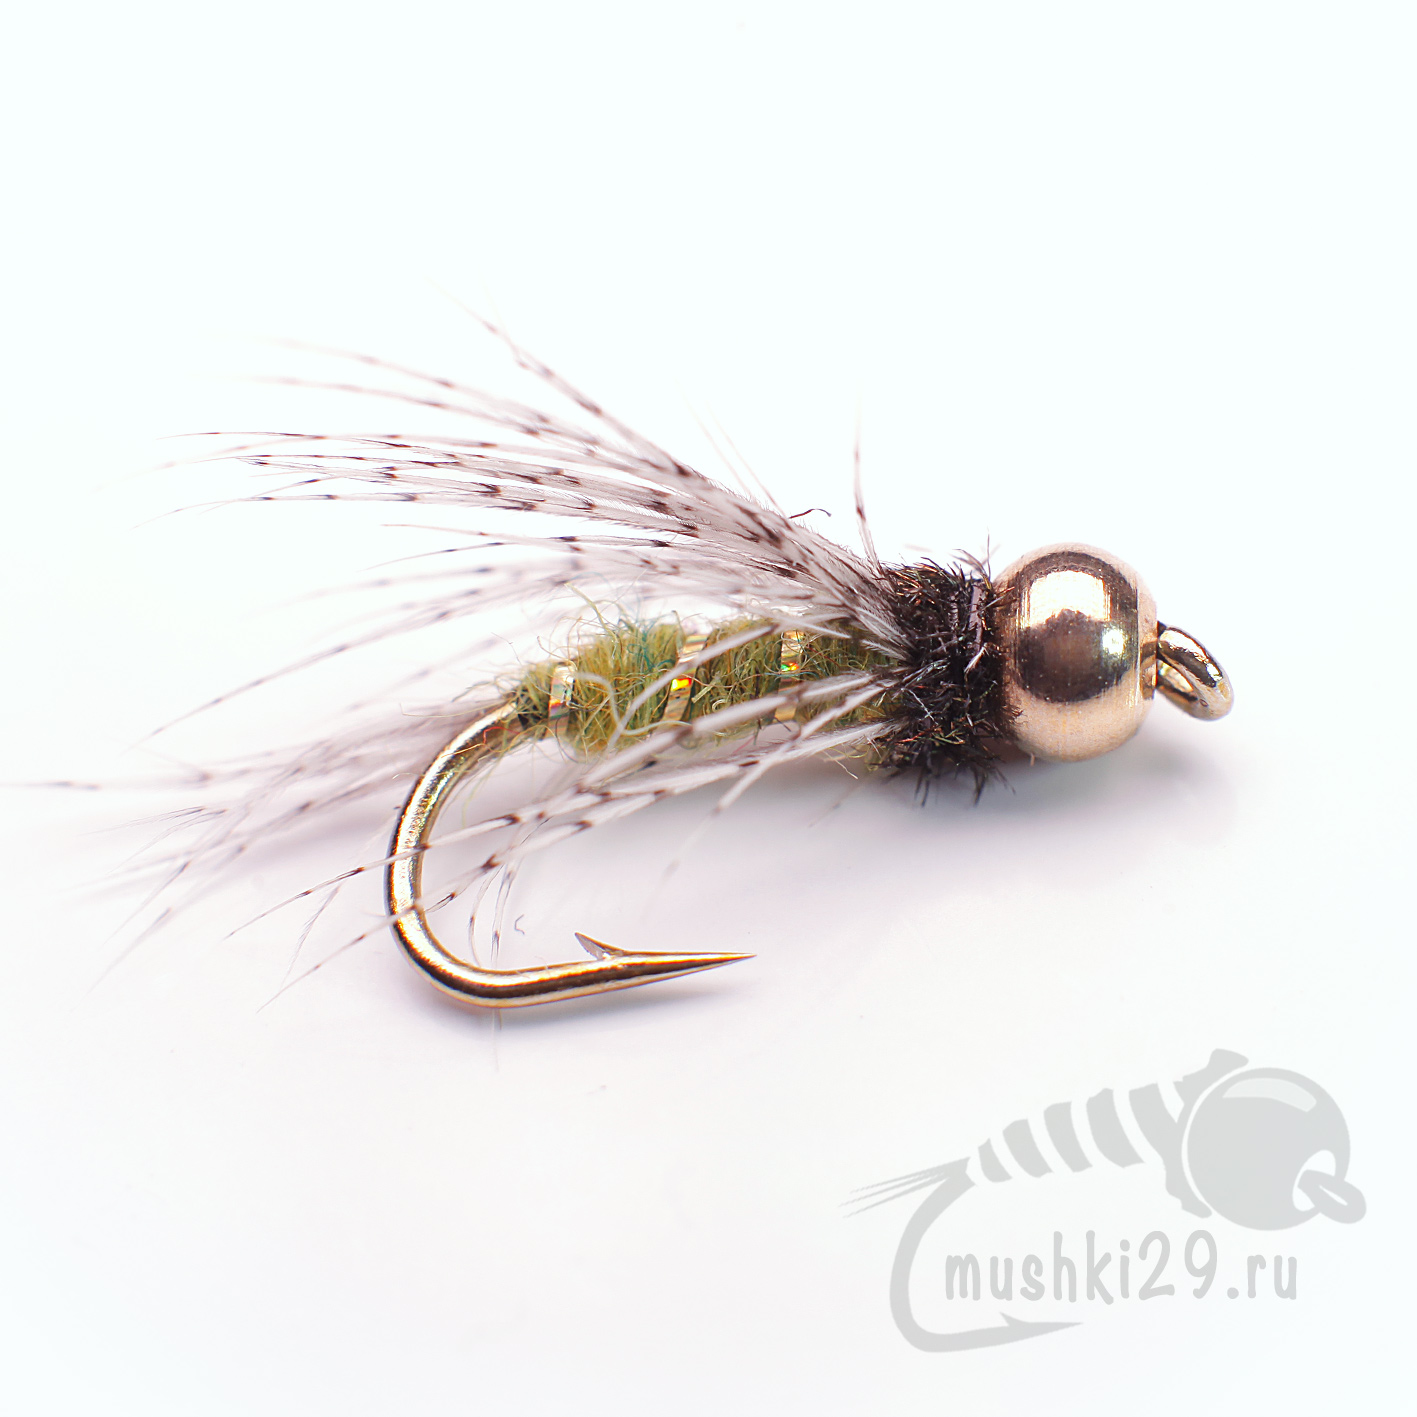 Simple spikey squirrel nymphs